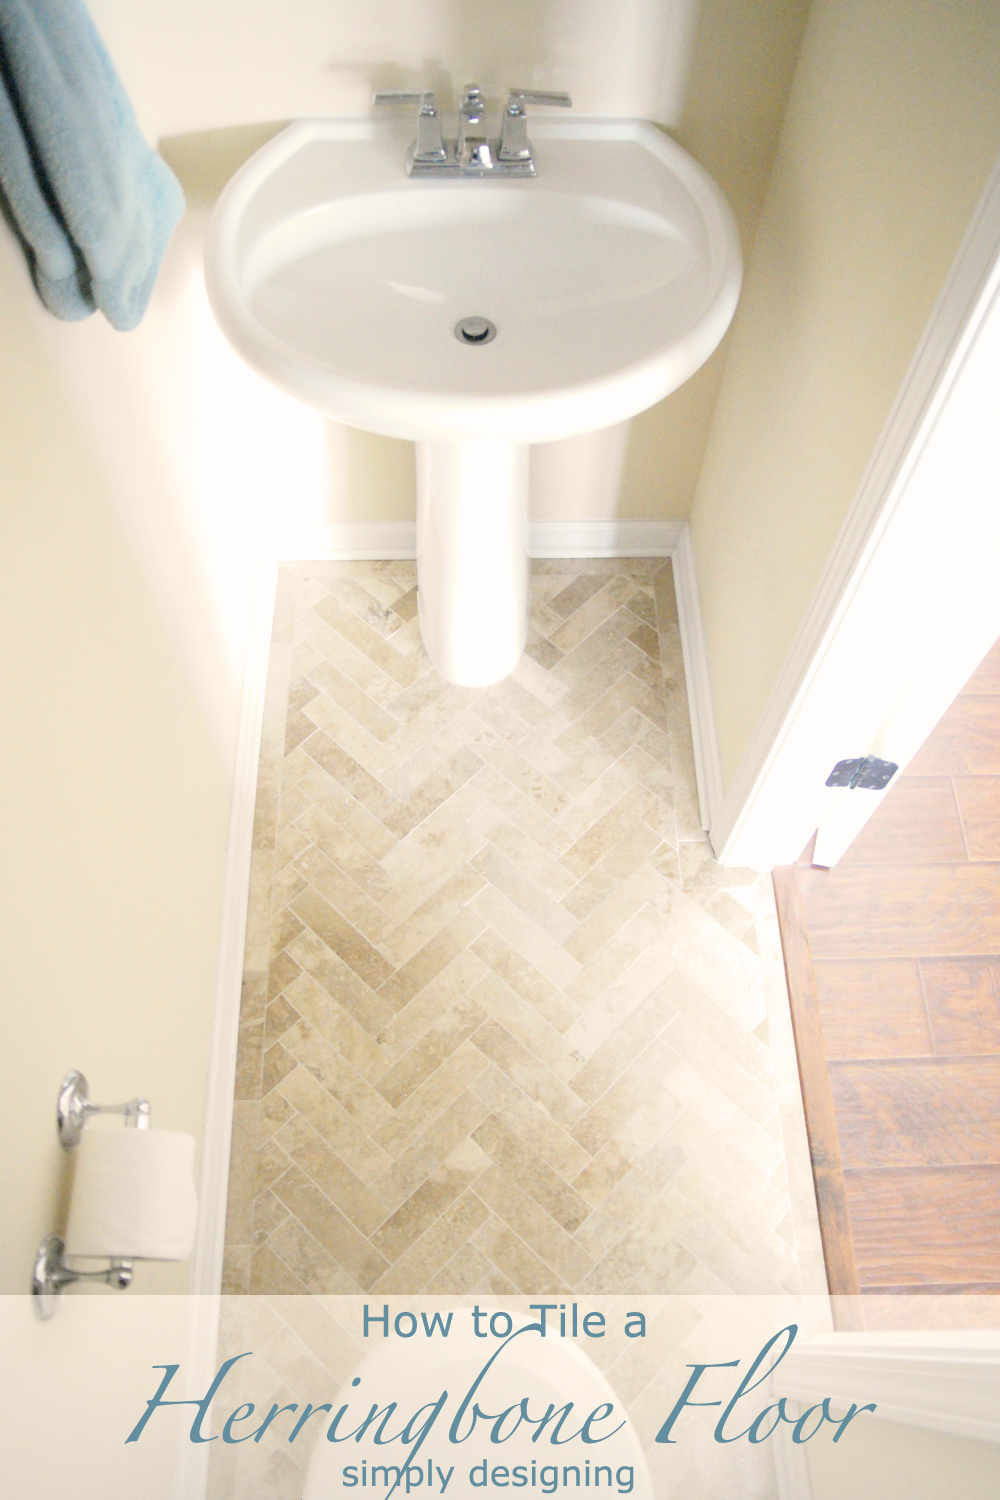 Always wanted a herringbone tile floor but thought it might be too difficult to do yourself or too expensive to get someone else to do it? Step by Step instructions with photos for prep, laying and installing them!